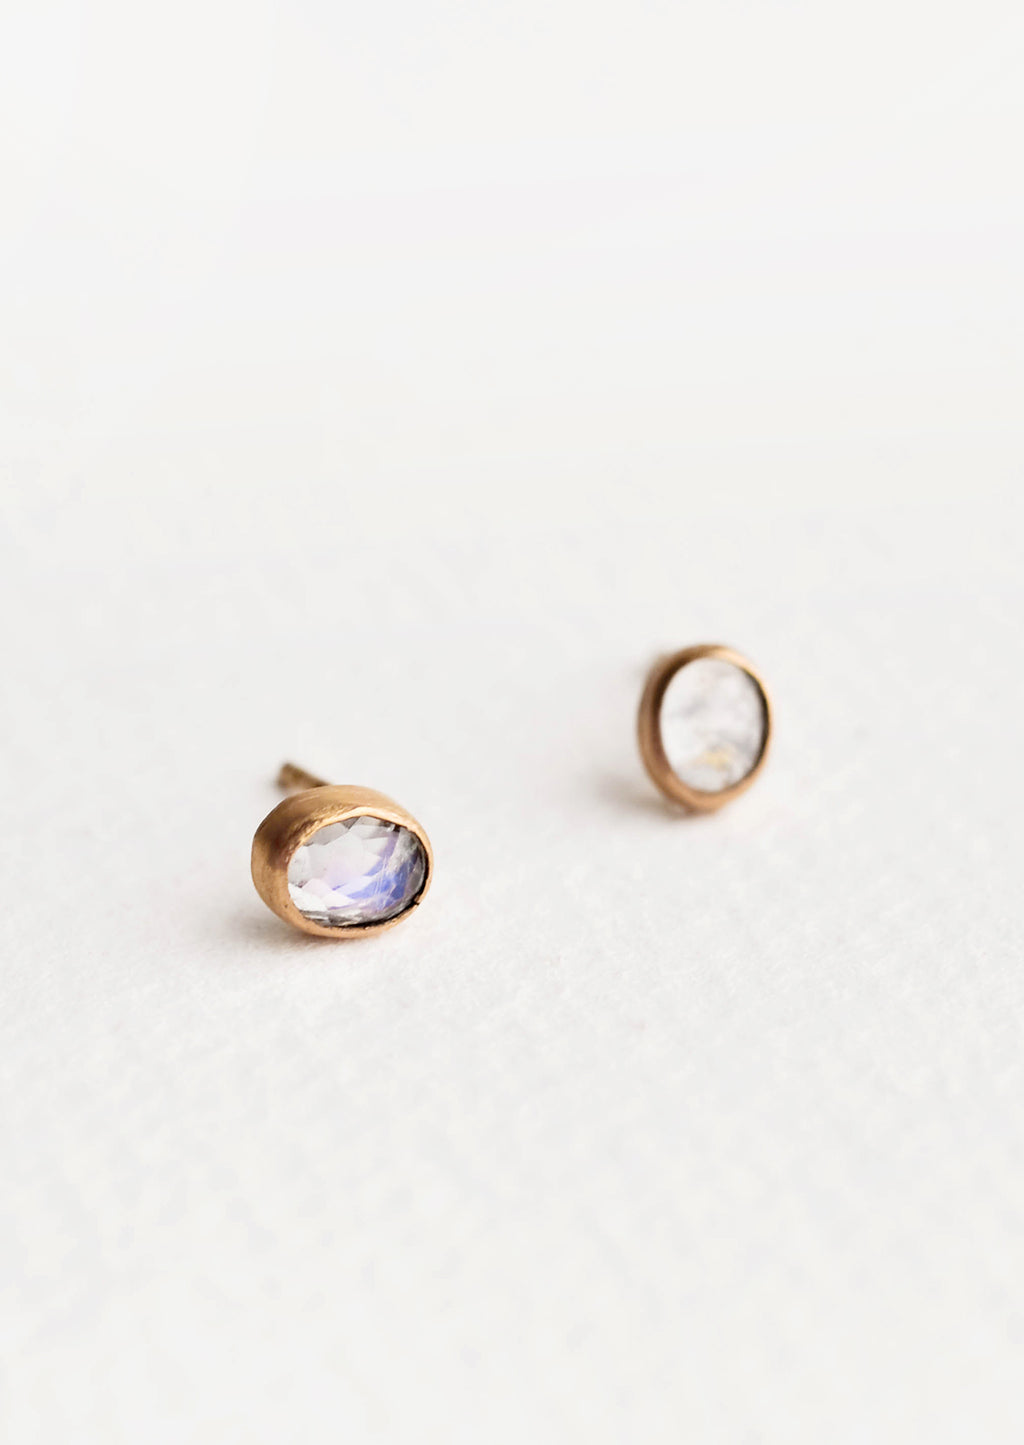 3: Gemma Moonstone Stud Earrings